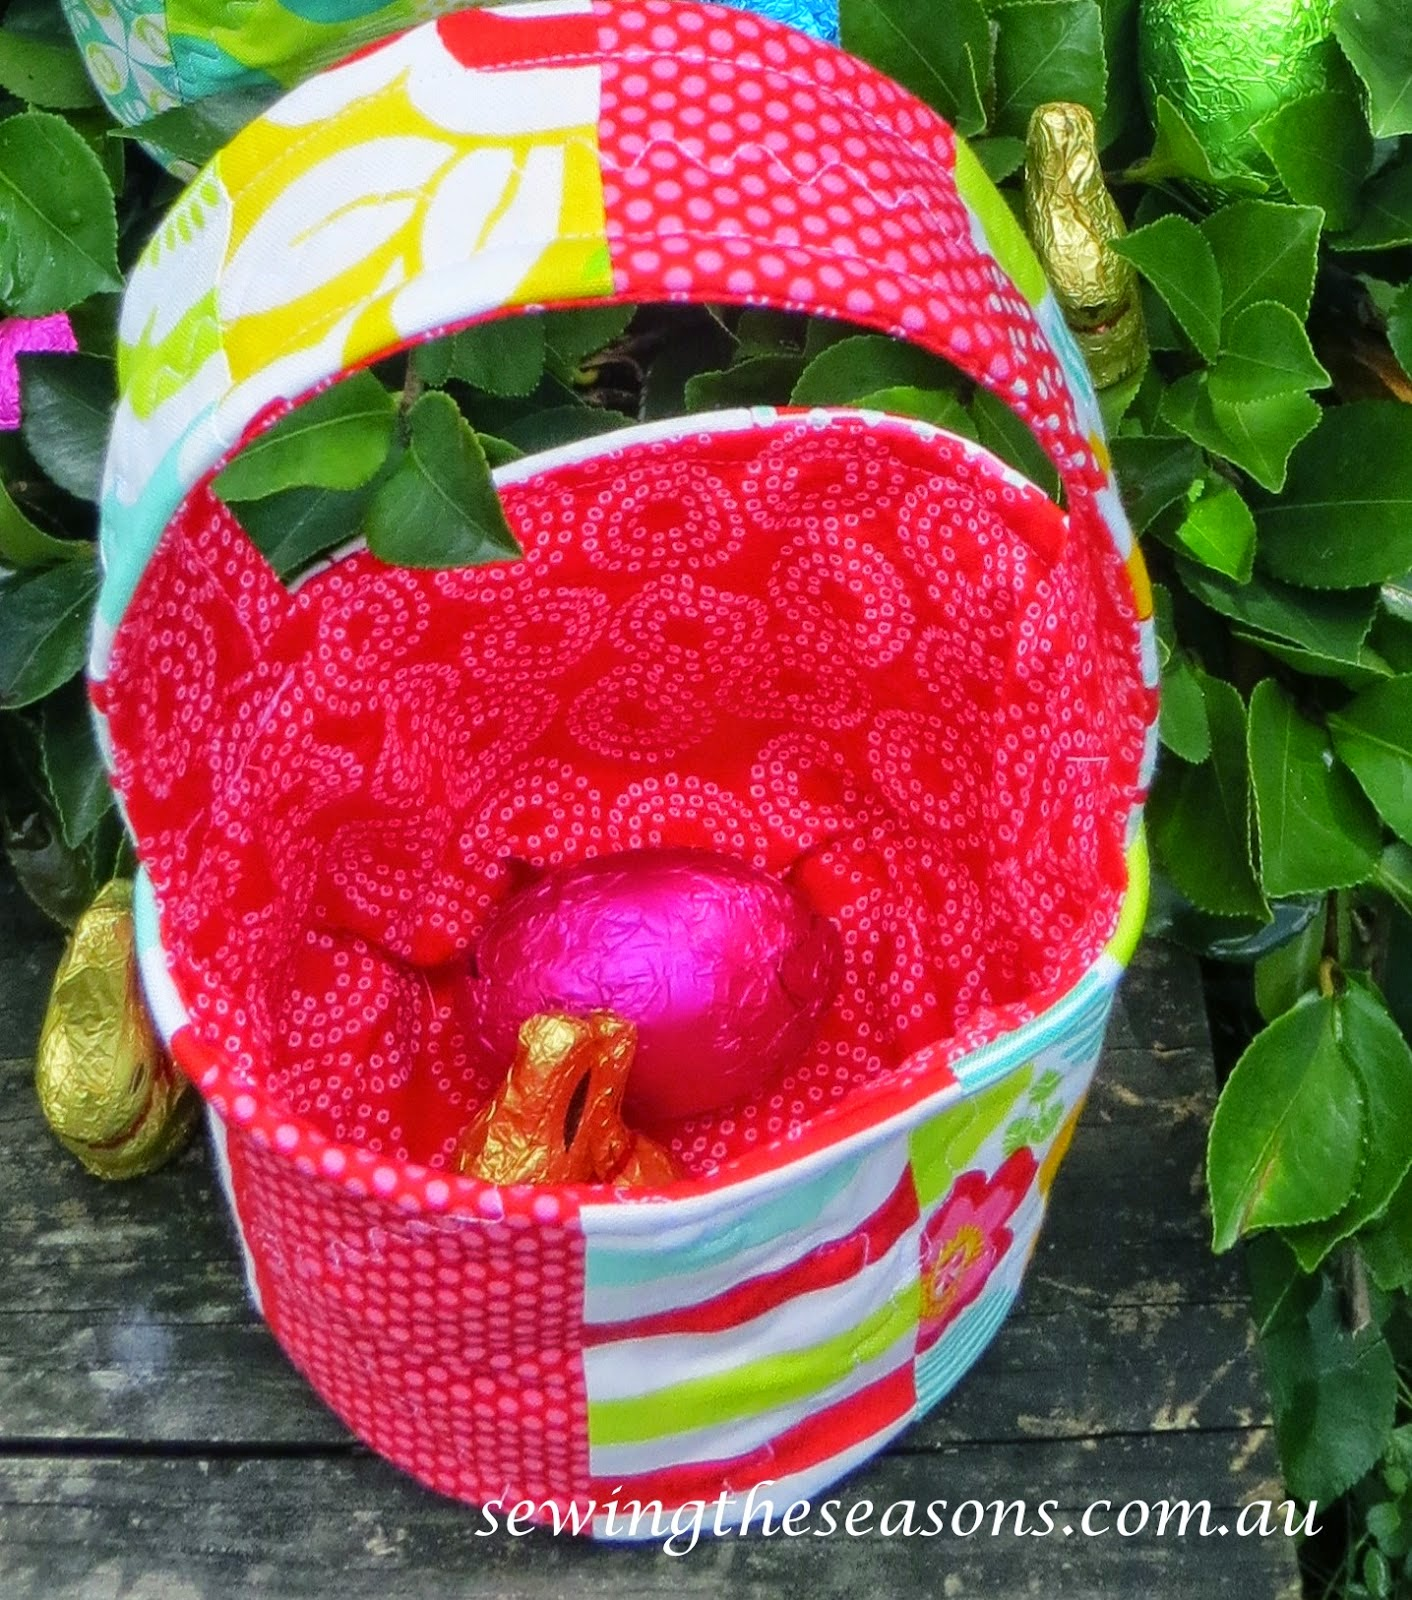 http://www.sewingtheseasons.com.au/2015/03/hippity-hoppity-easters-on-its-way.html